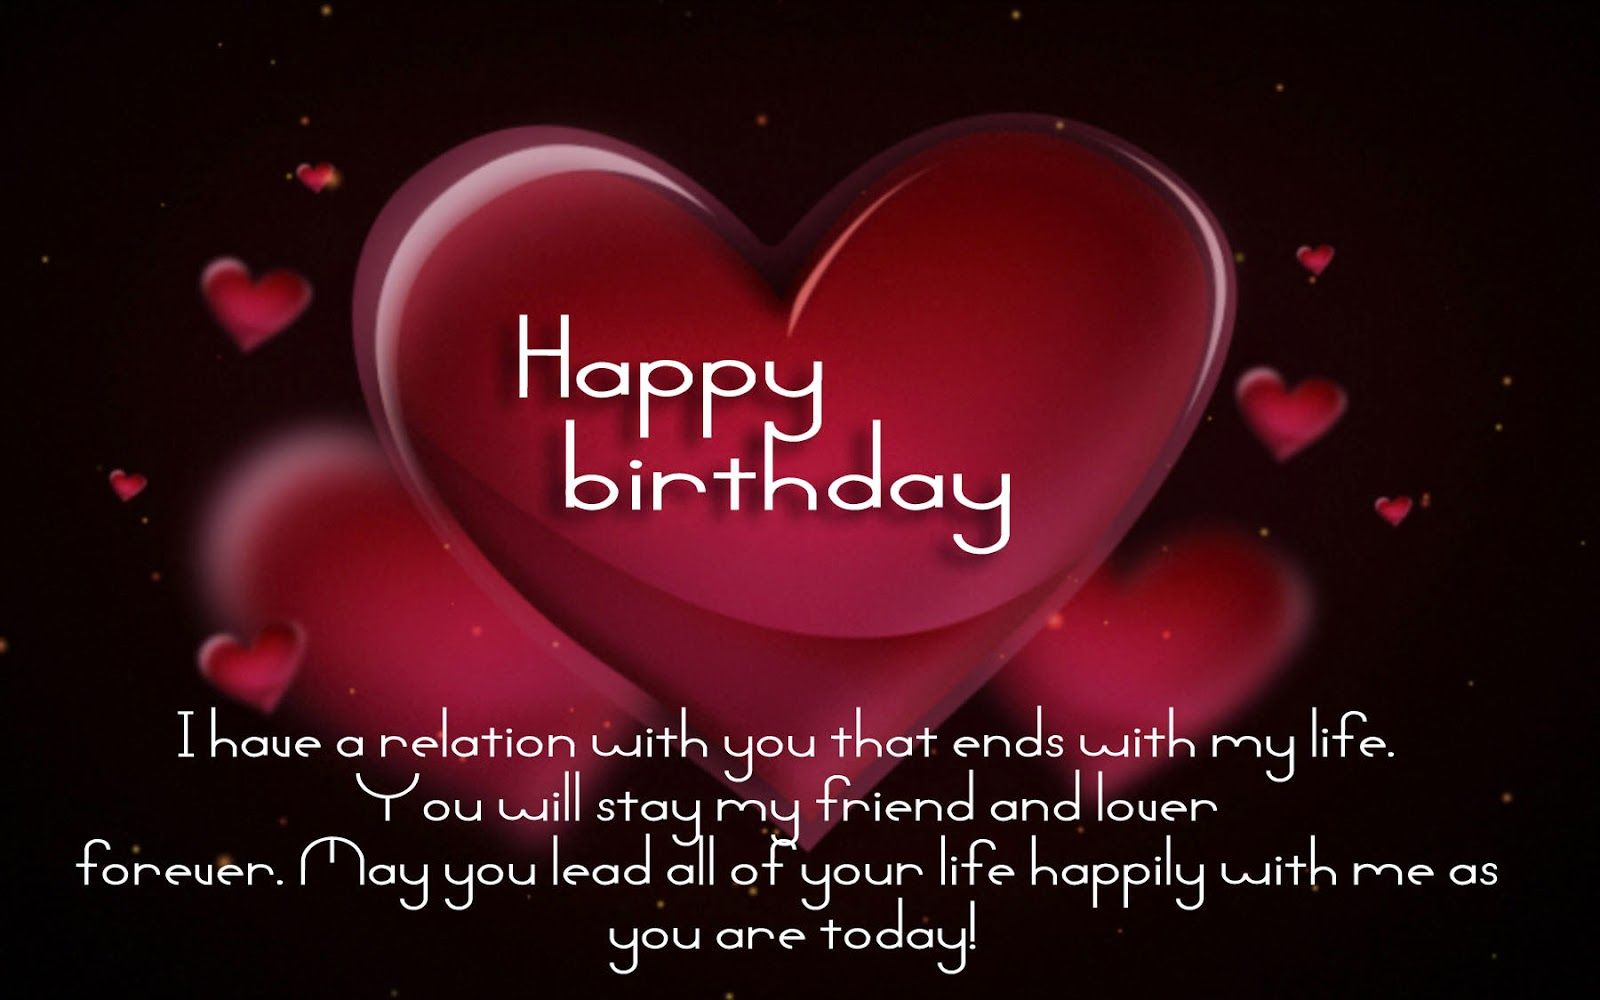 Birthday Love Quotes Endearing Happy Birthday Love Quotes Images Poems Messages  Happy Birthday